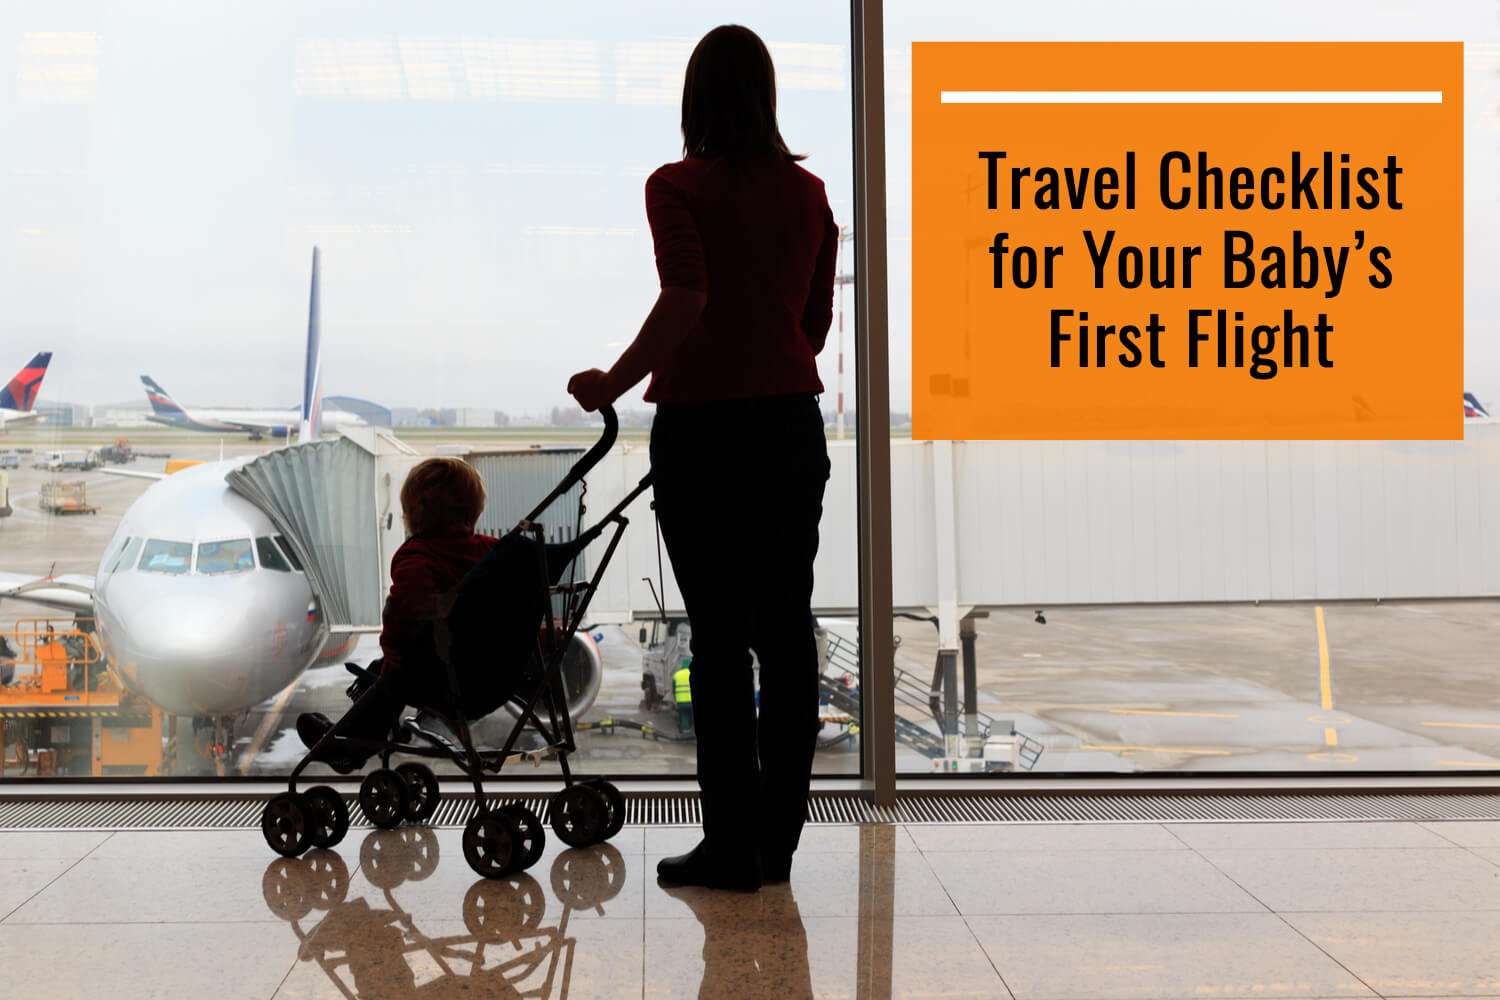 Travel Checklist for Your Baby's First Flight